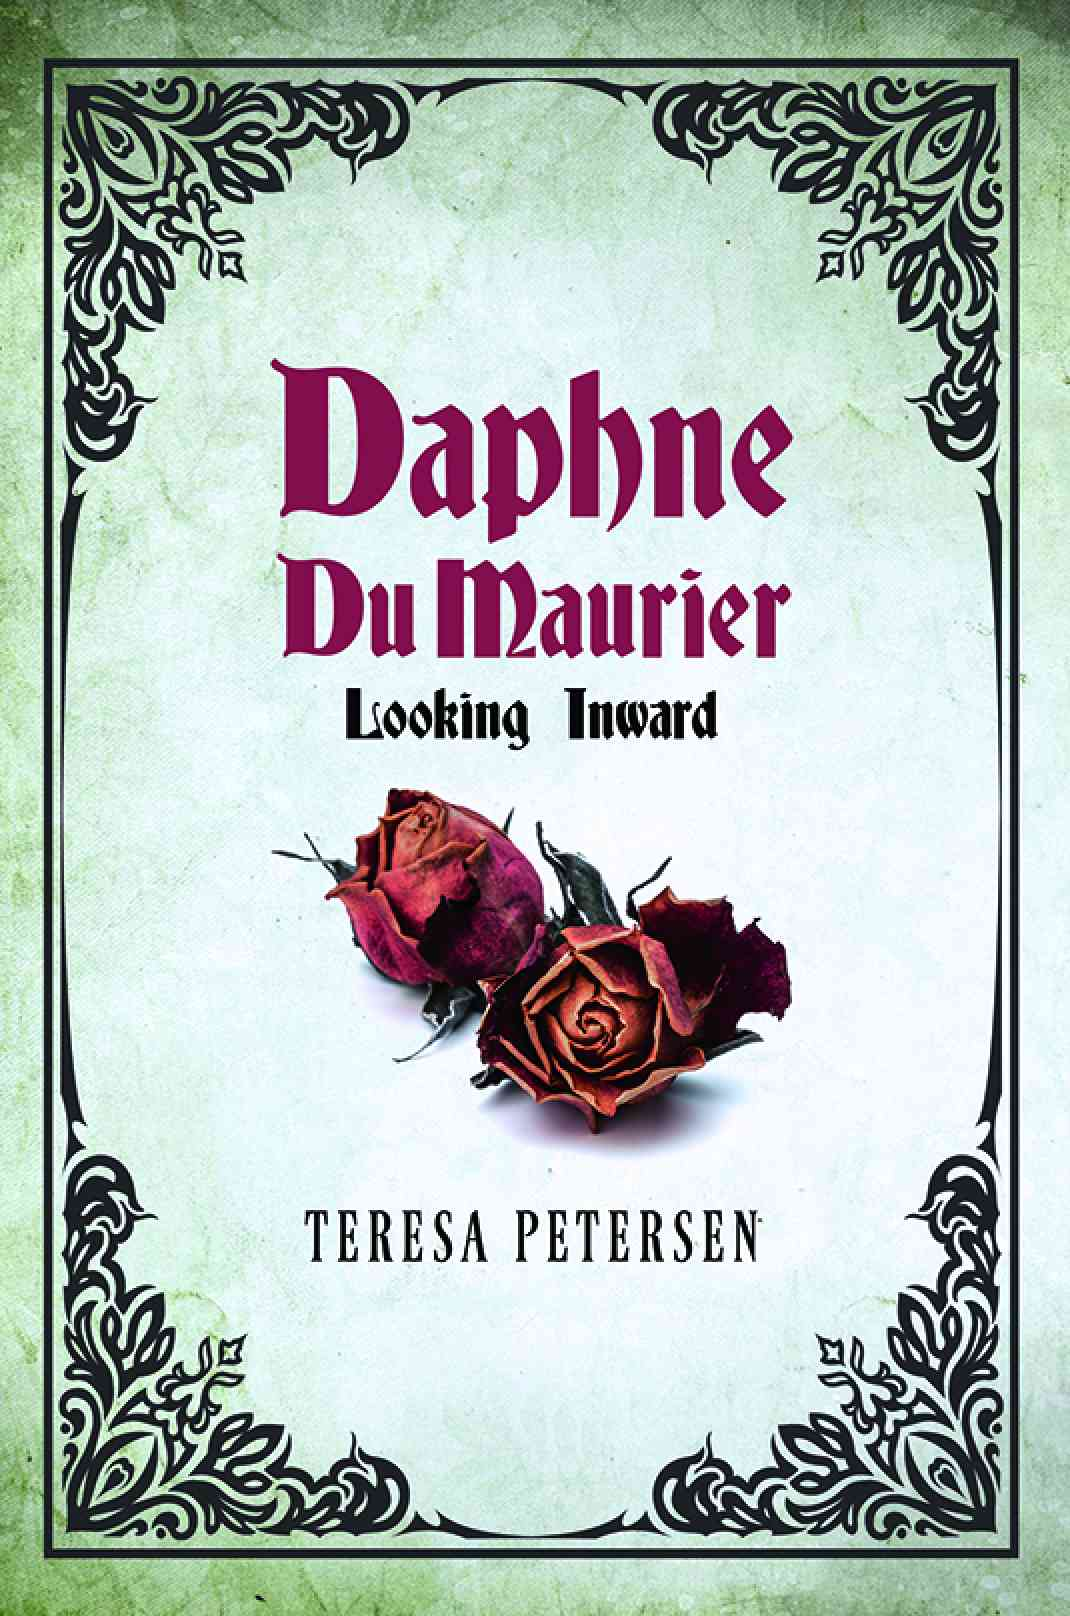 An analysis of the topic of daphe du mauriers novel - Essay